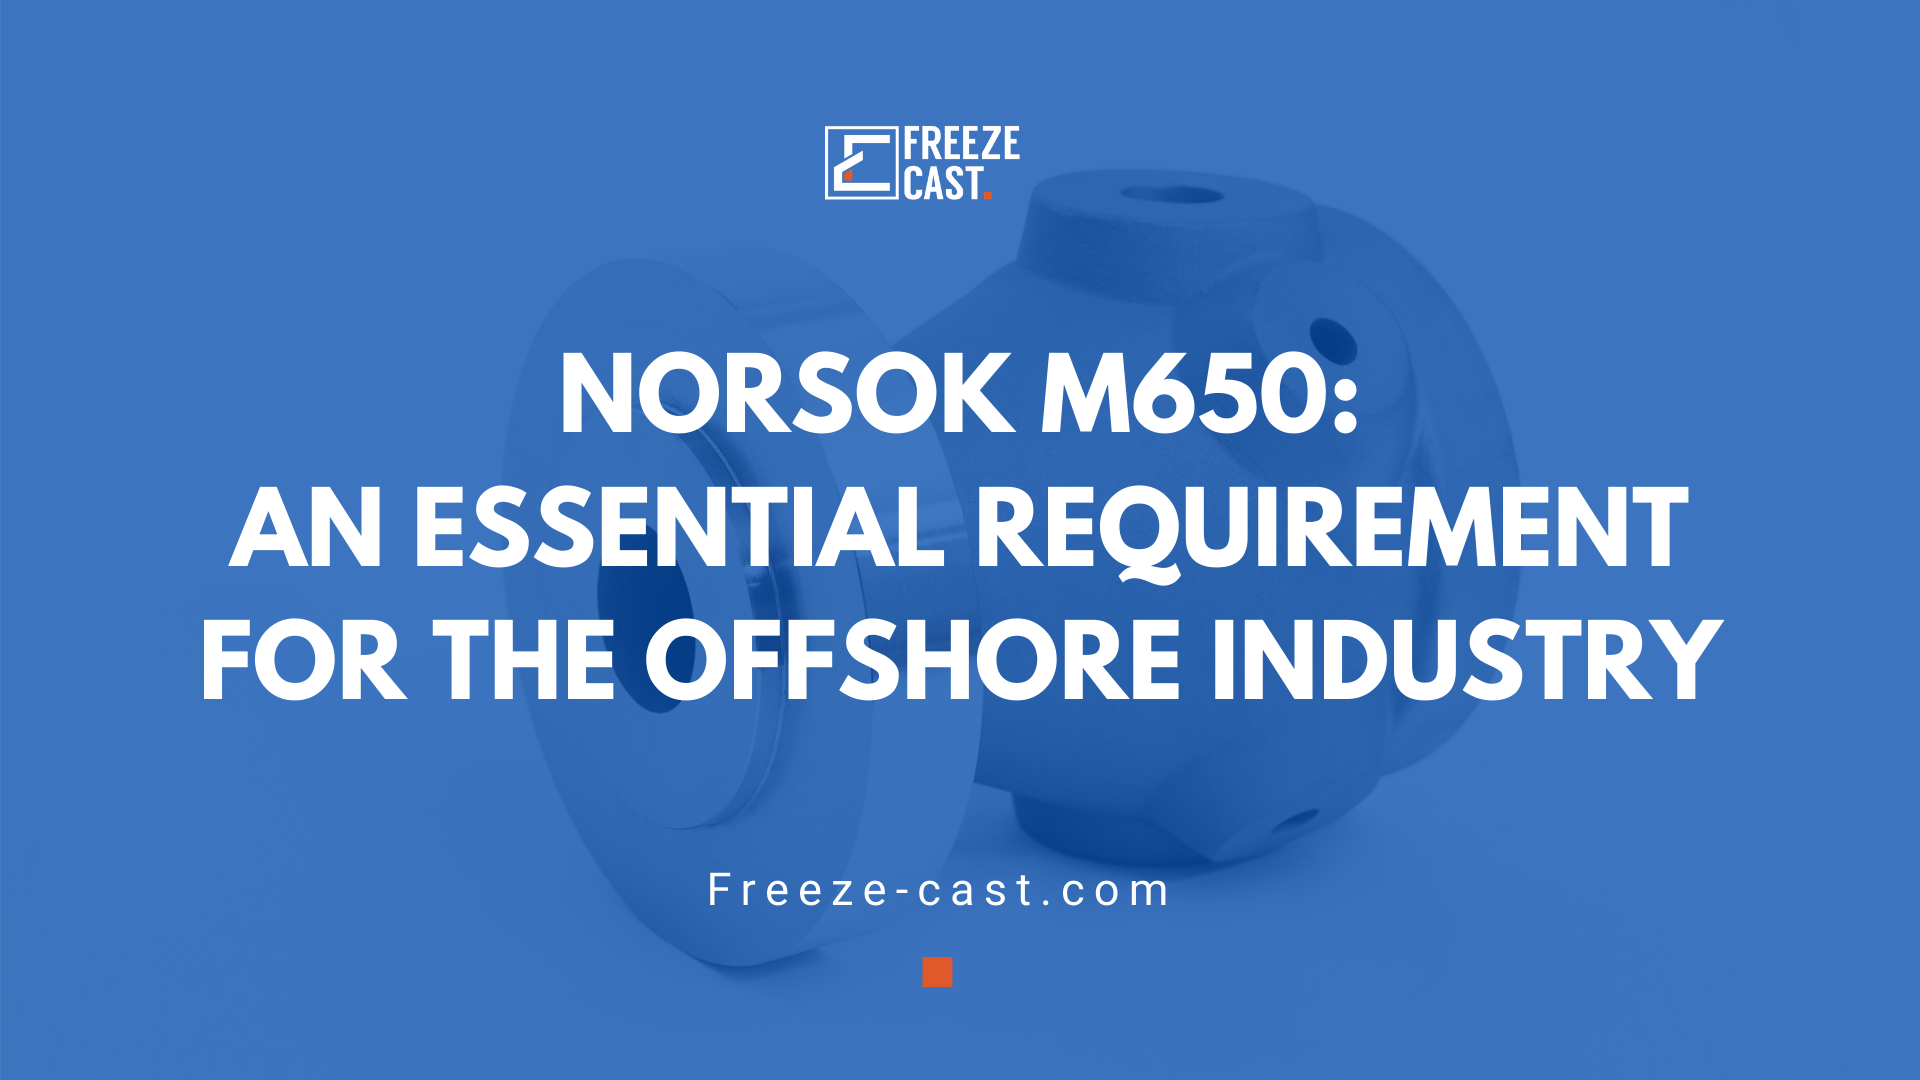 NORSOK M650: an essential requirement for the offshore industry